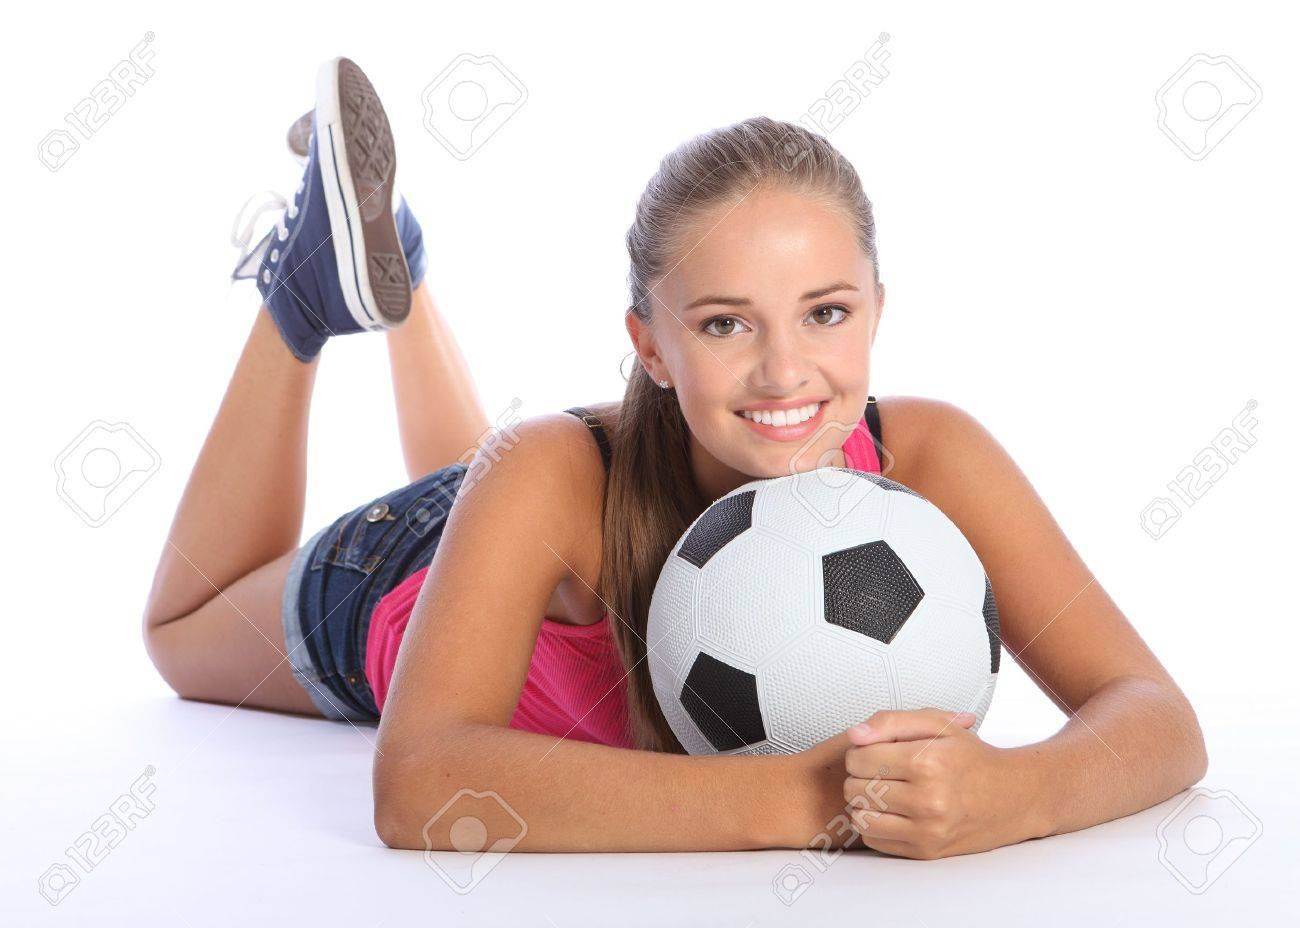 Fit young teenage athlete girl lying on the floor holding soccer ball with beautiful smile wearing pink vest and denim shorts. Full body shot against white background. Stock Photo - 10782755